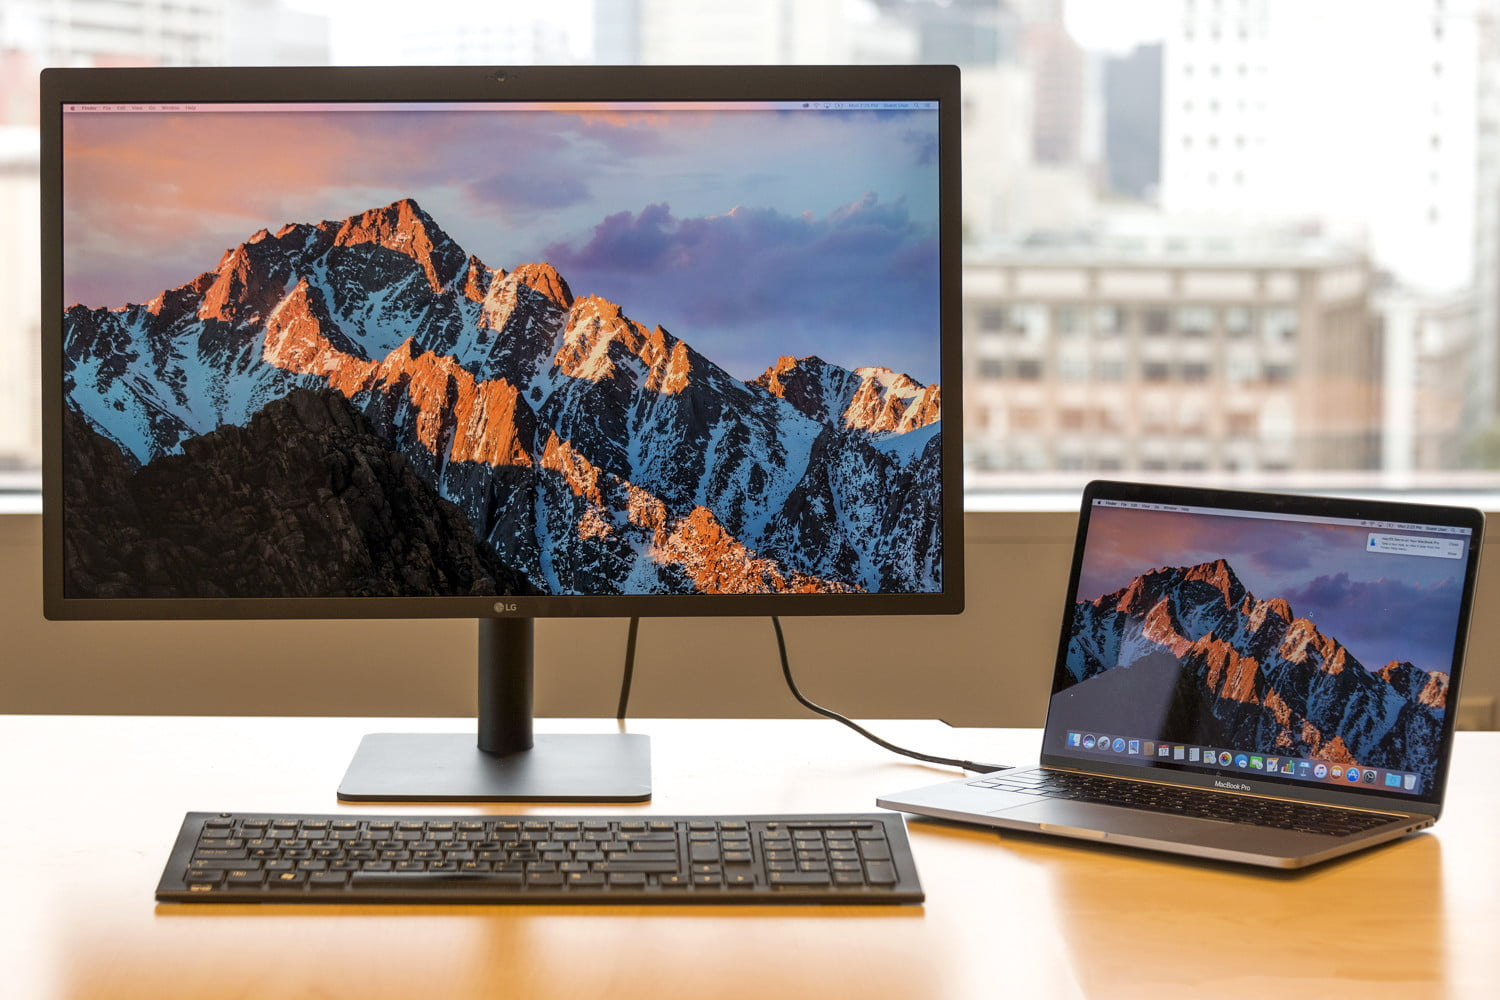 LG Ultrafine  5K Display Launched Powerful Feature Updated to Connect Macbook Pro, iPAD Pro Devices